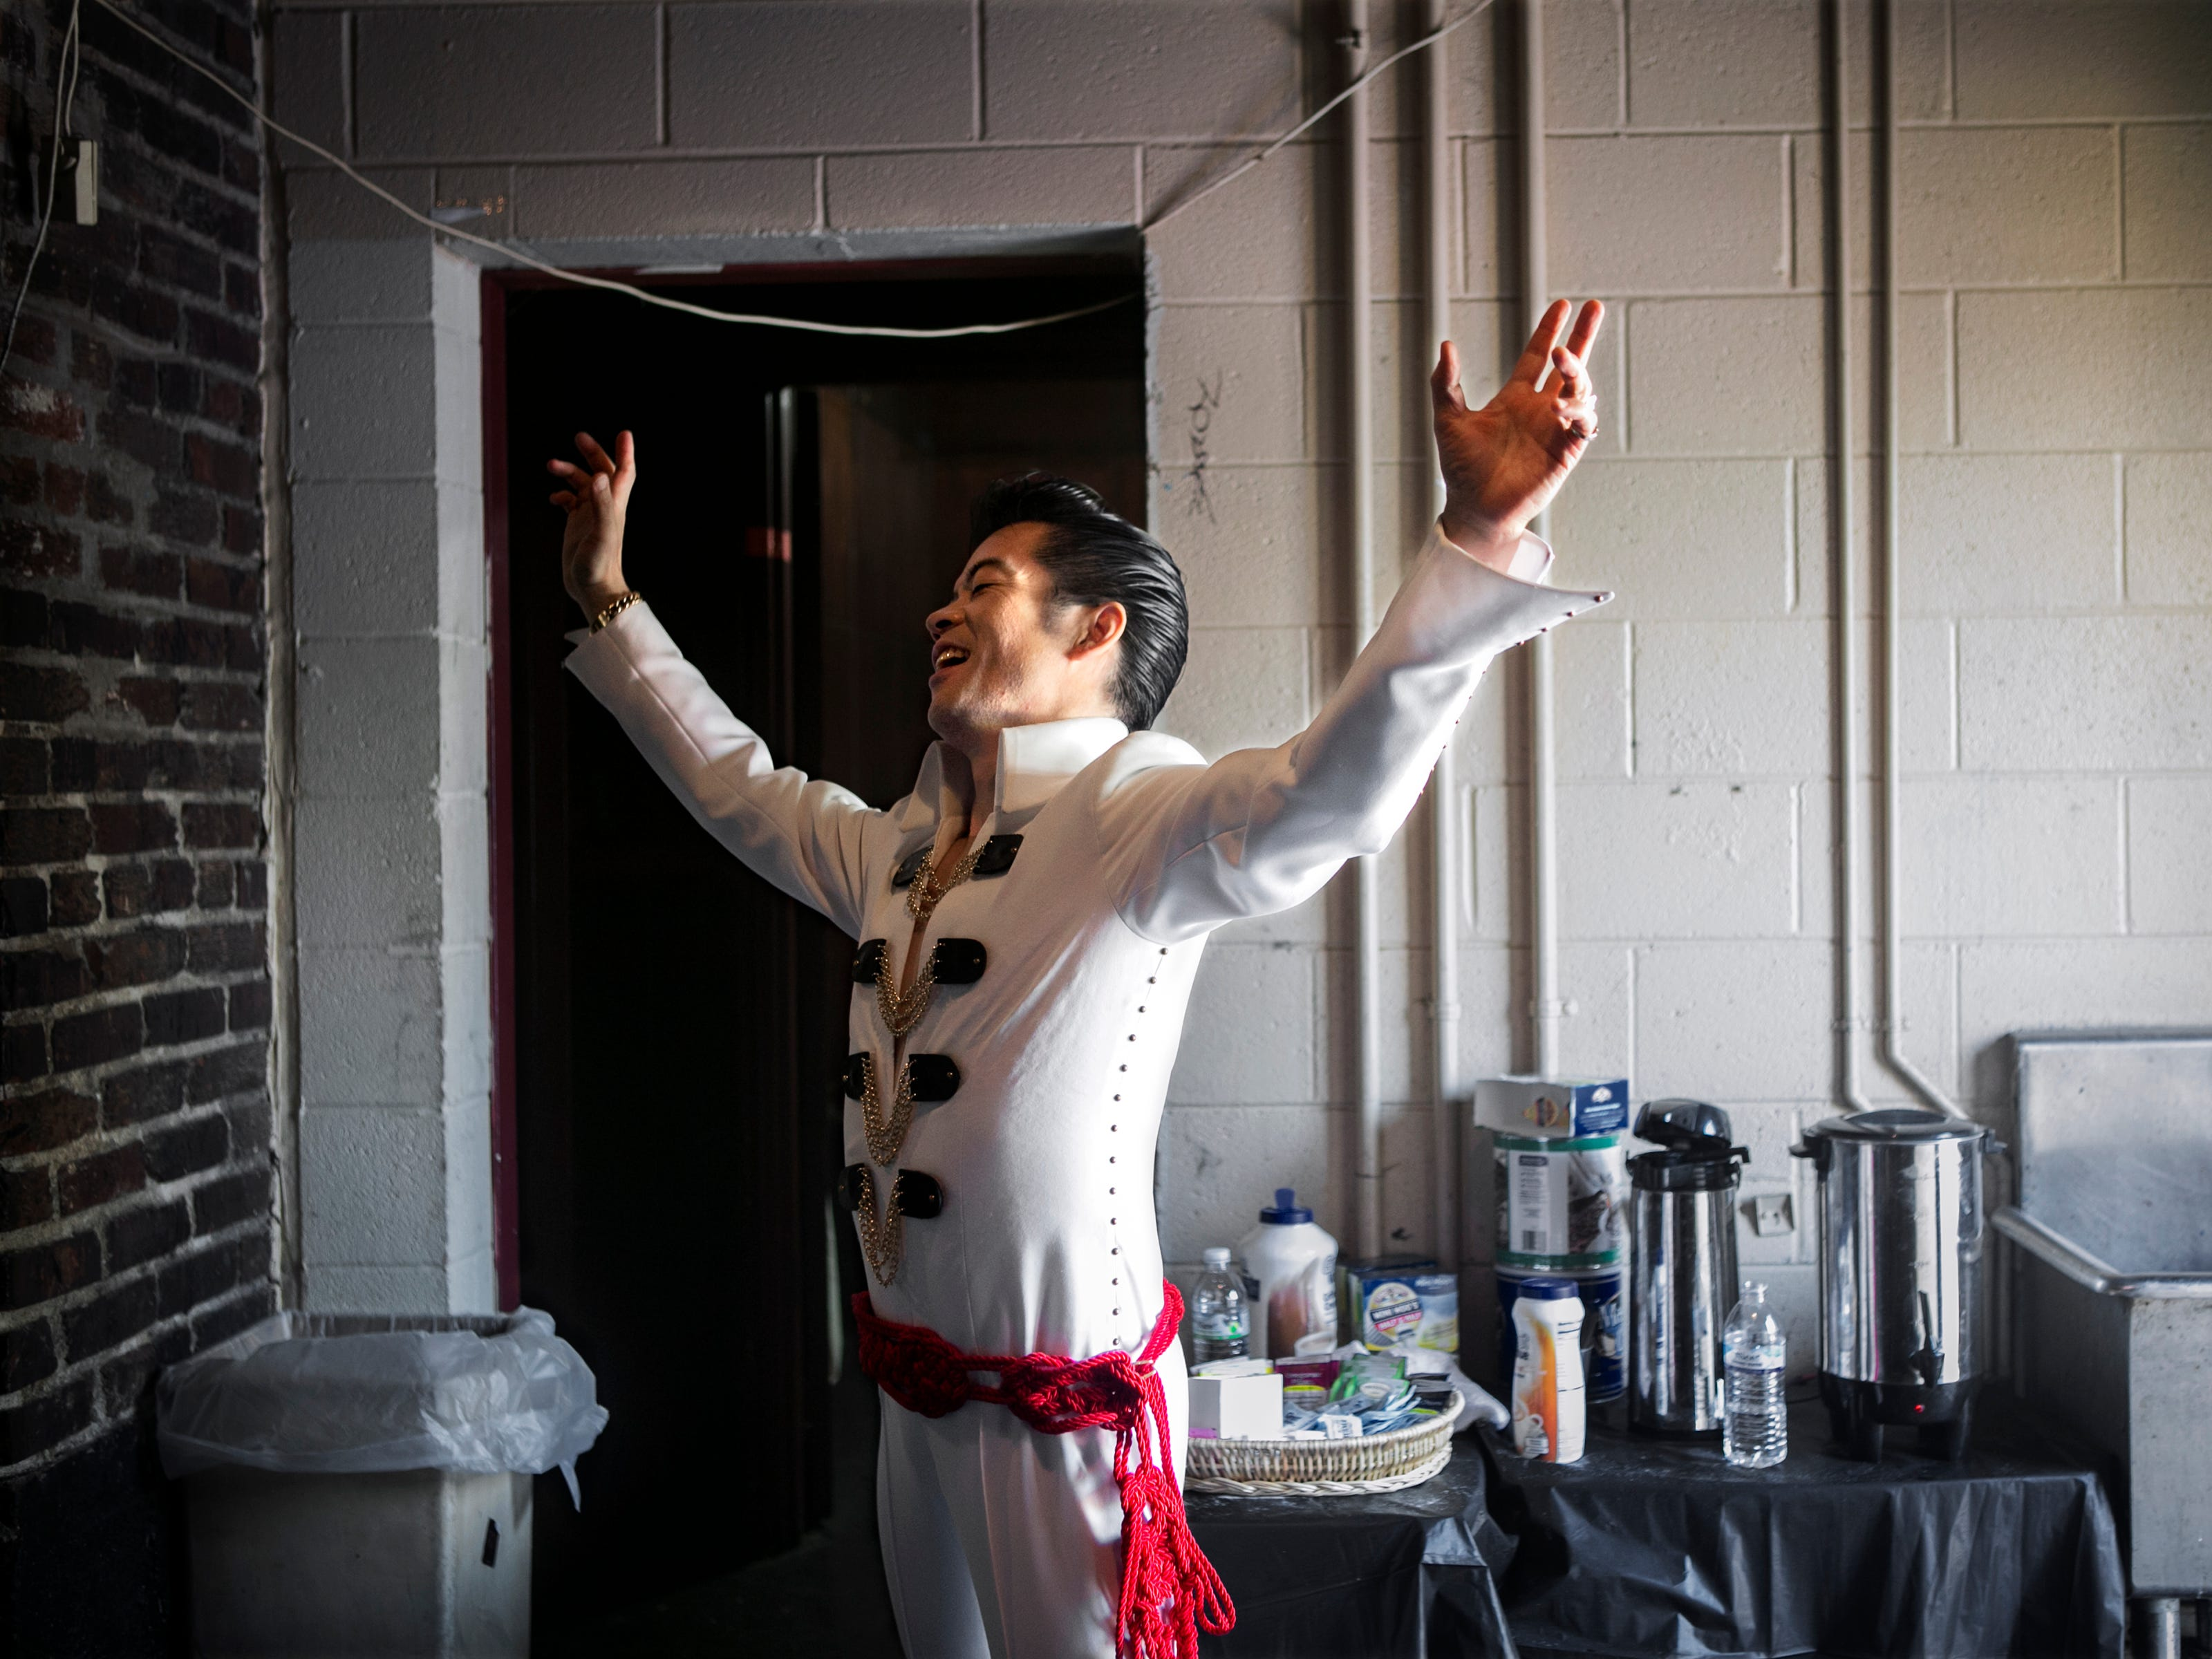 "August 15, 2014 - Elvis Presley tribute artist Charlie Neishio, 51, of Osaka, Japan, throws his arms into the air as another artist performs onstage during Doc Franklin's Original Images of the King, an Elvis Tribute Artist Contest and Showcase, at the New Daisy Theatre Friday afternoon. In 2012, Neishio won a Japanese Elvis competition and made the pilgrimage to Memphis. This year, he spent $2,600 for his flight to compete in Memphis this week. ""I love Elvis,"" Neishio states after admitting he wanted to be like the late performer since he was 14 years old. He shares that Elvis' song ""My Boy"" is a special tune that saved his life because he was a lonely child. It inspired him to sing. ""In Japan Elvis is a lot of fun,"" Neishio says. ""My hairstyle is Elvis. So, everybody likes me because (of) Elvis."" (Yalonda M. James/The Commercial Appeal)"